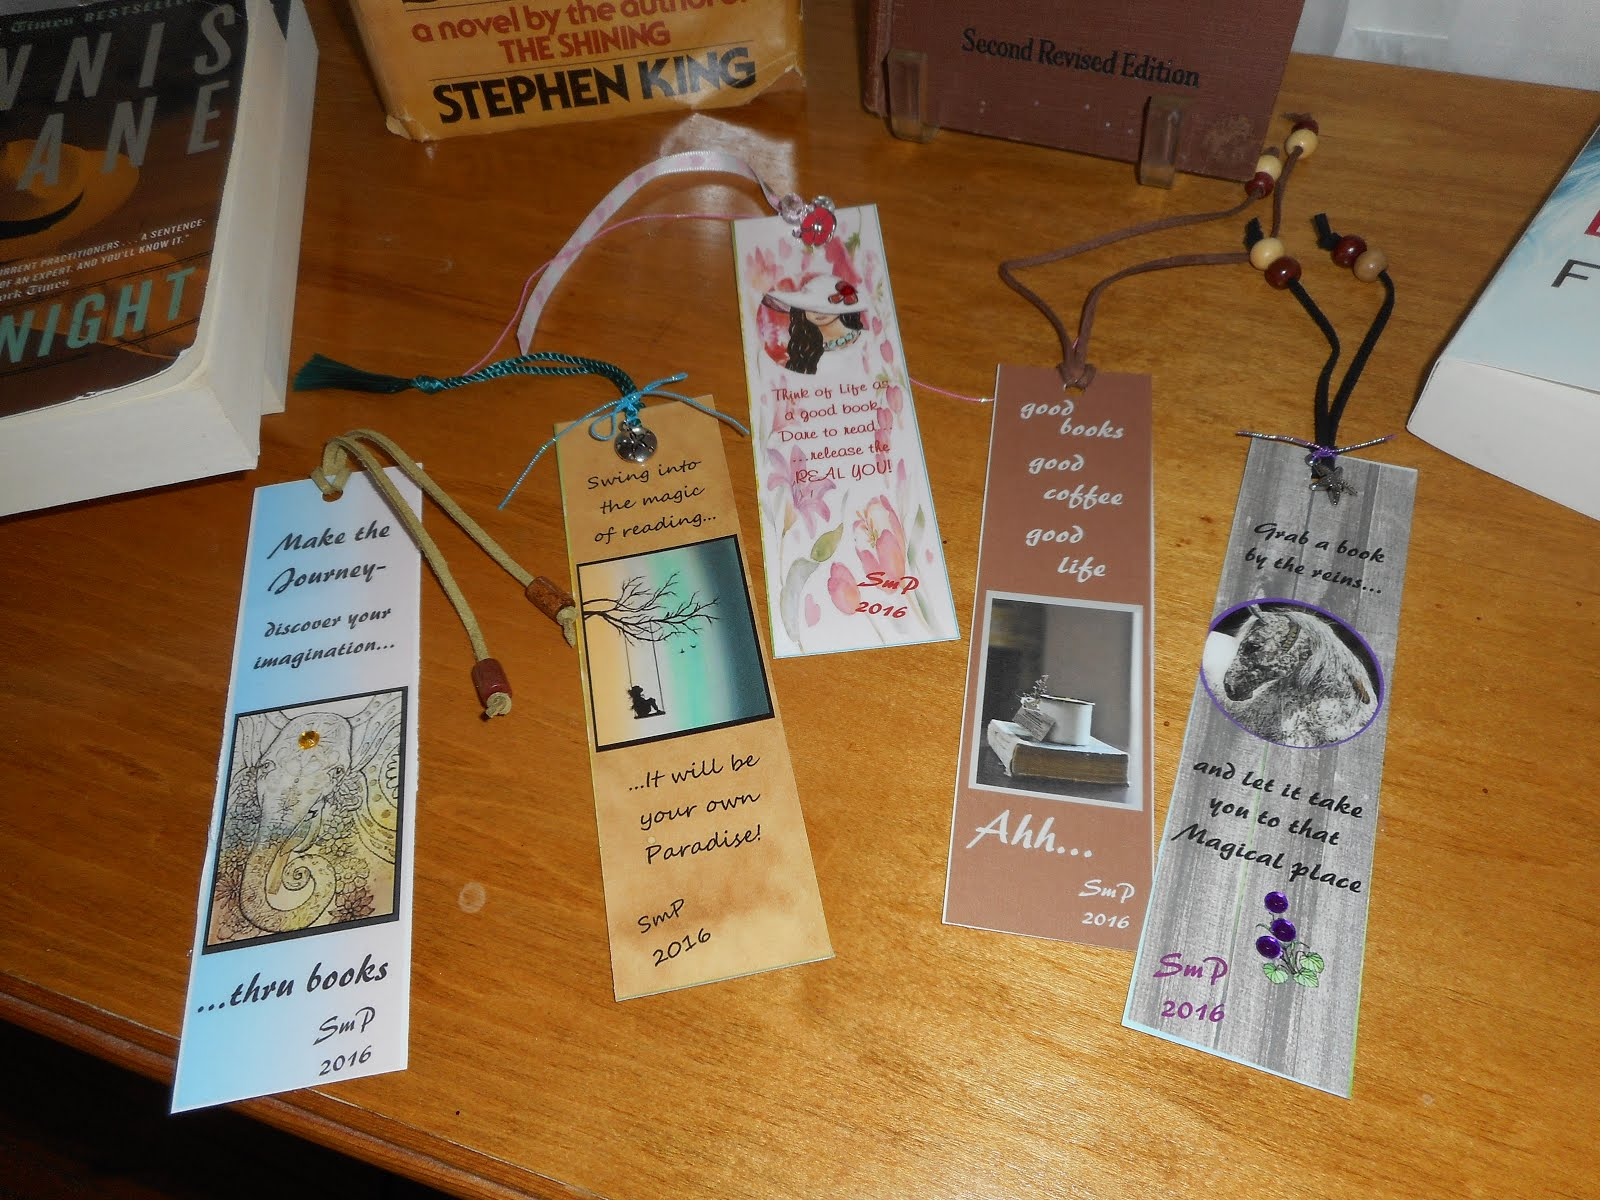 Some of my bookmark designs